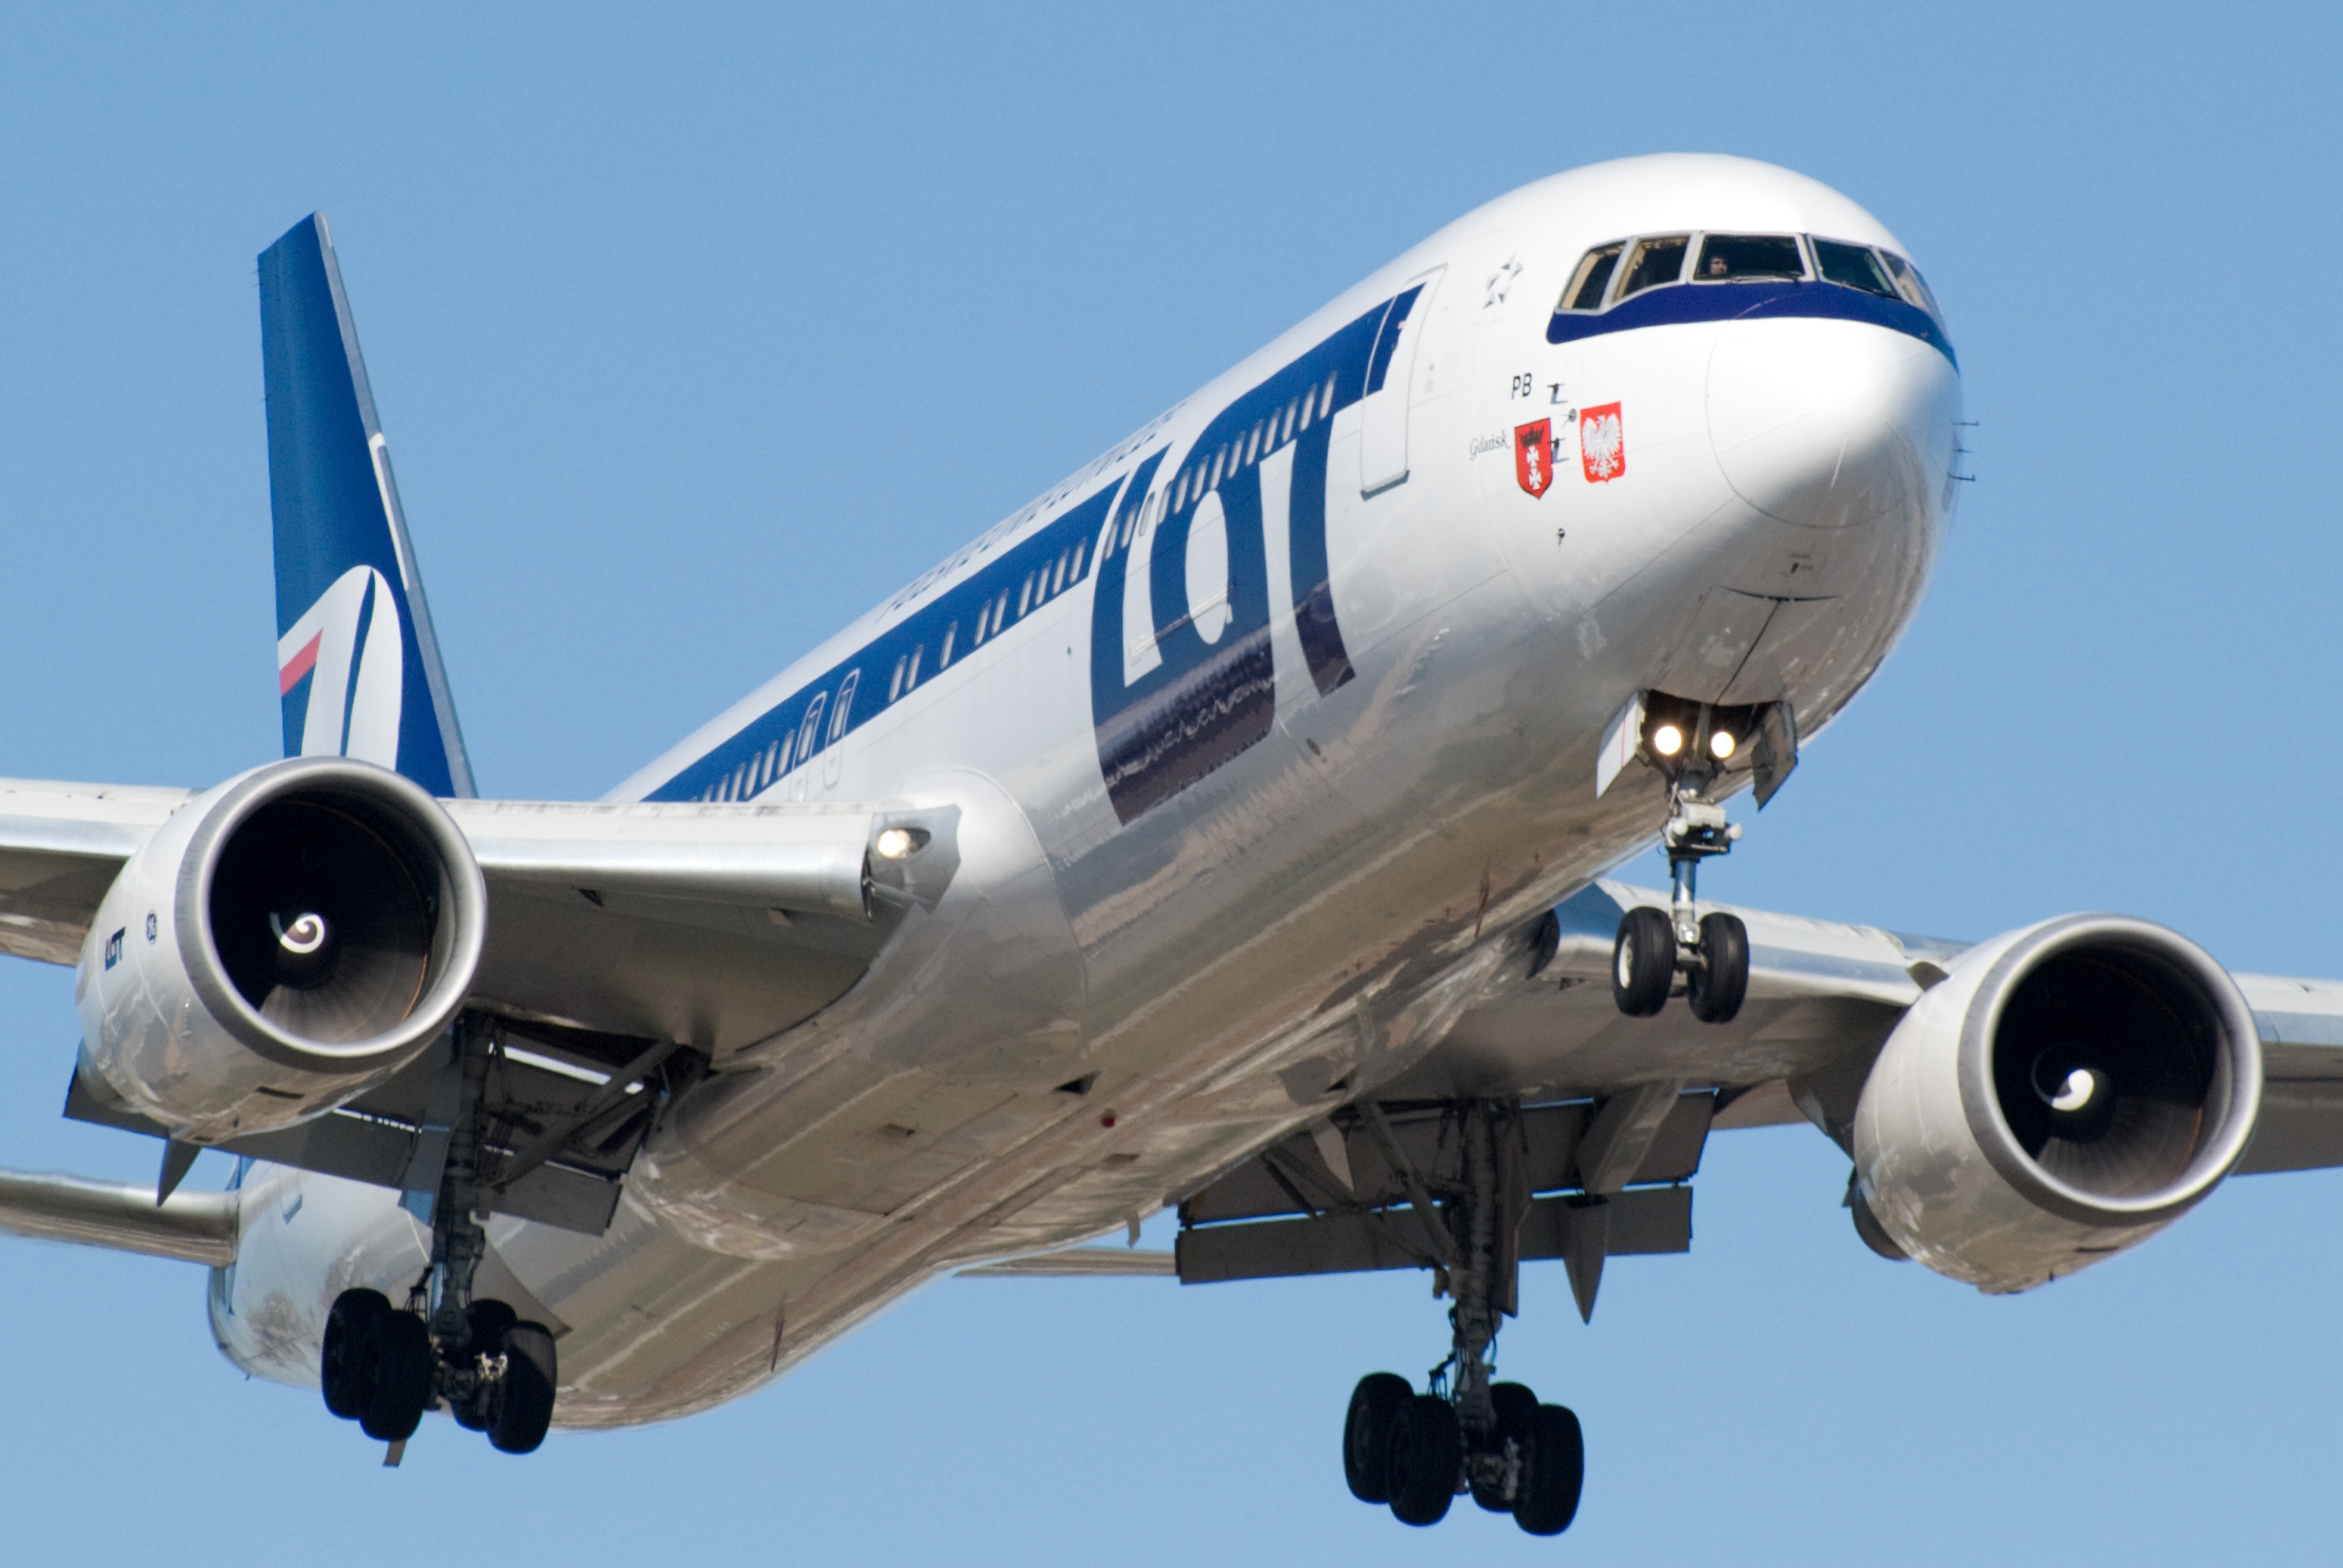 LOT-polonais Air Lines (LOT Polish Airlines). Sayt.2 officiel